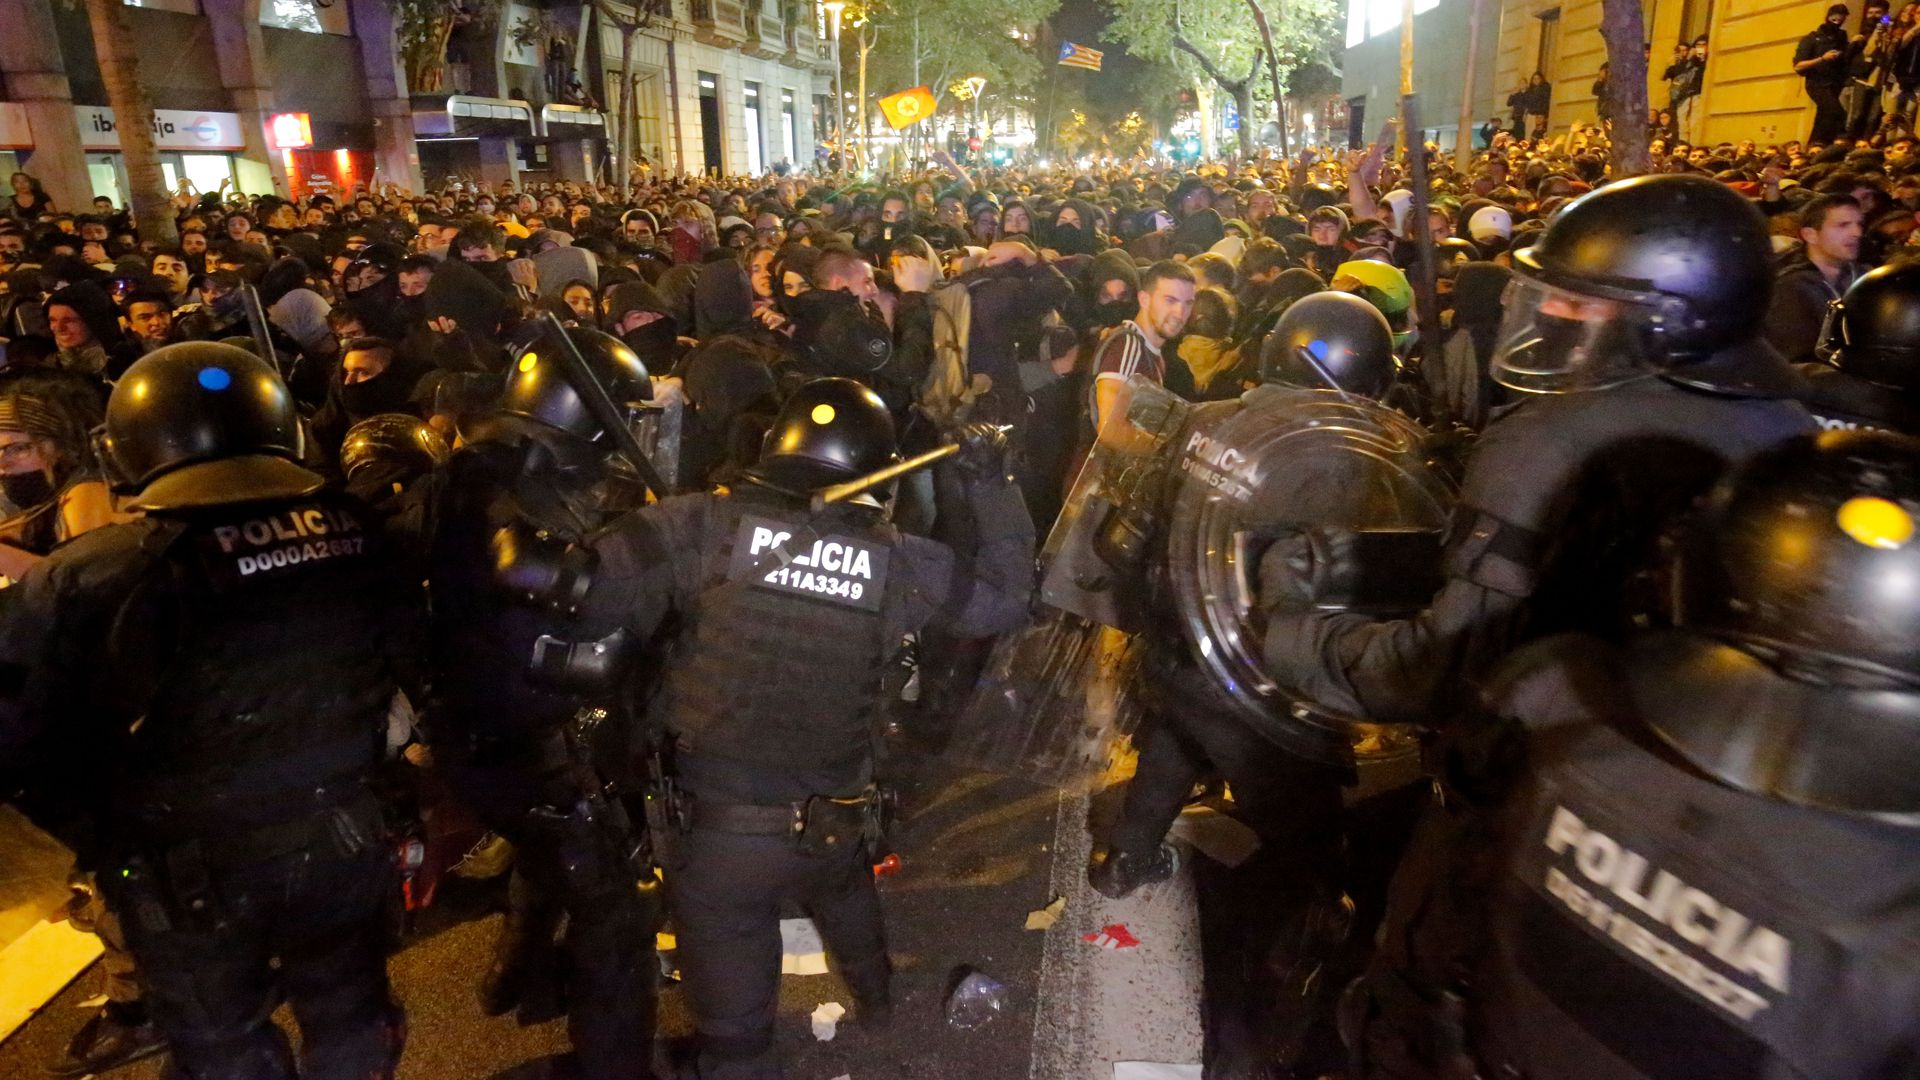 In photos: Unrest in Barcelona after Spain jails Catalan separatists